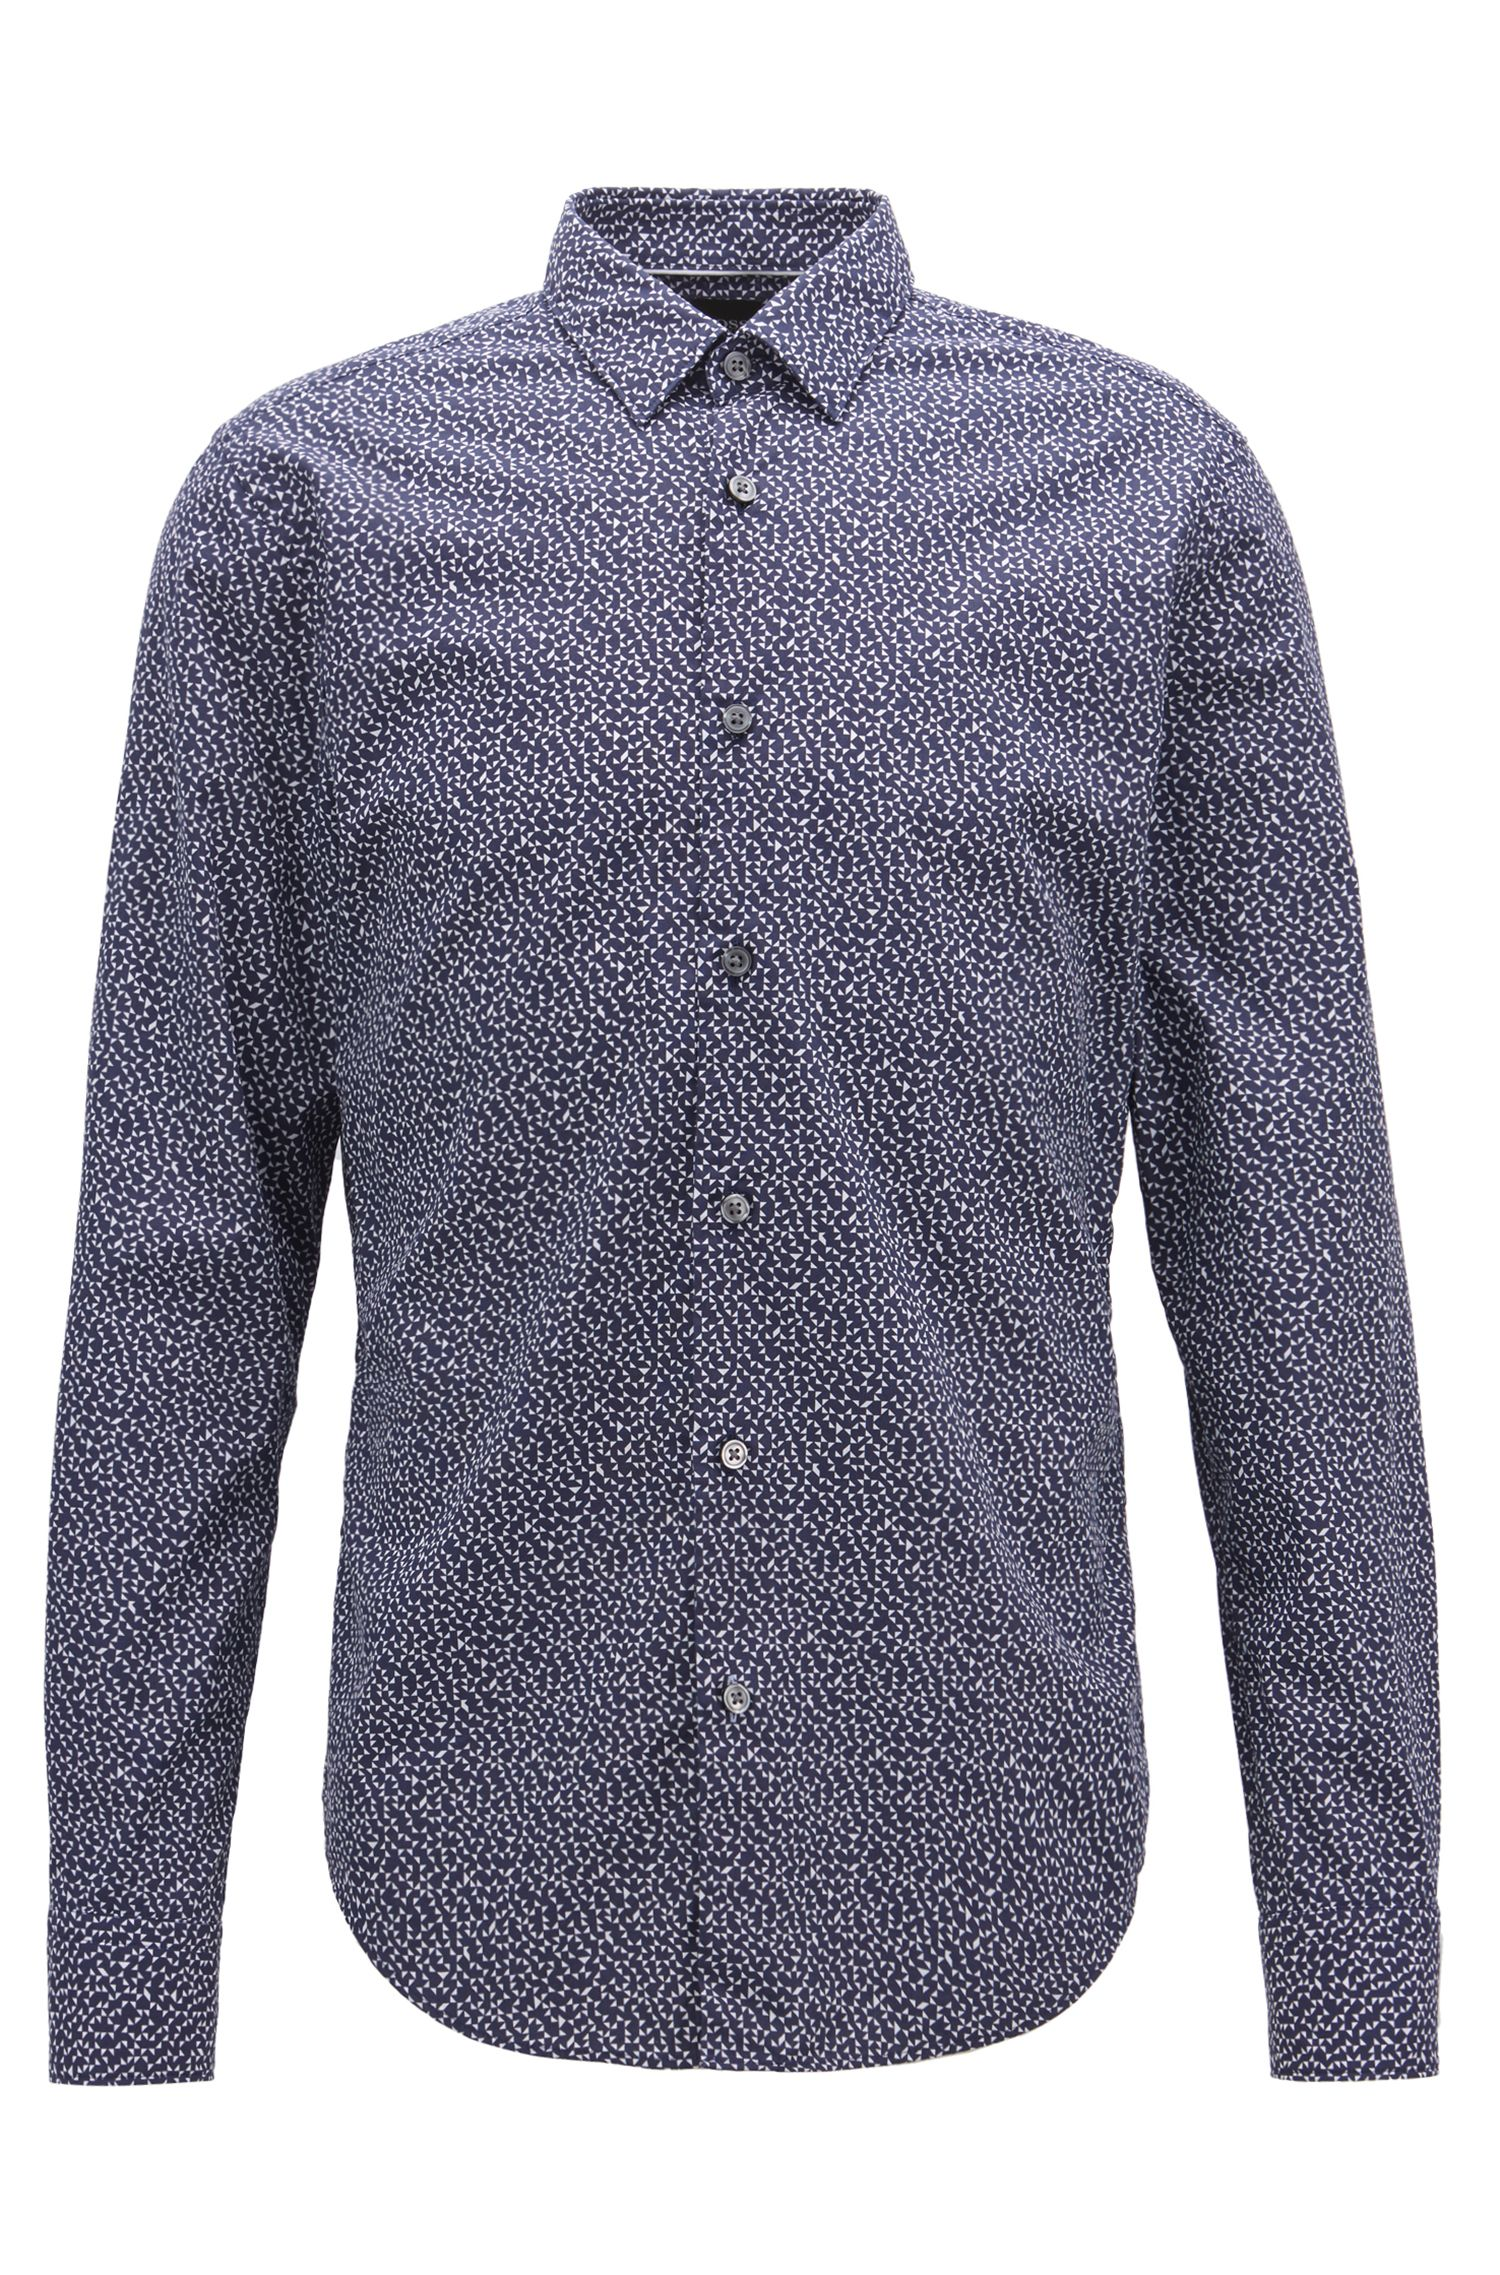 Slim-fit shirt in cotton with Anni Albers-inspired pattern, Blue